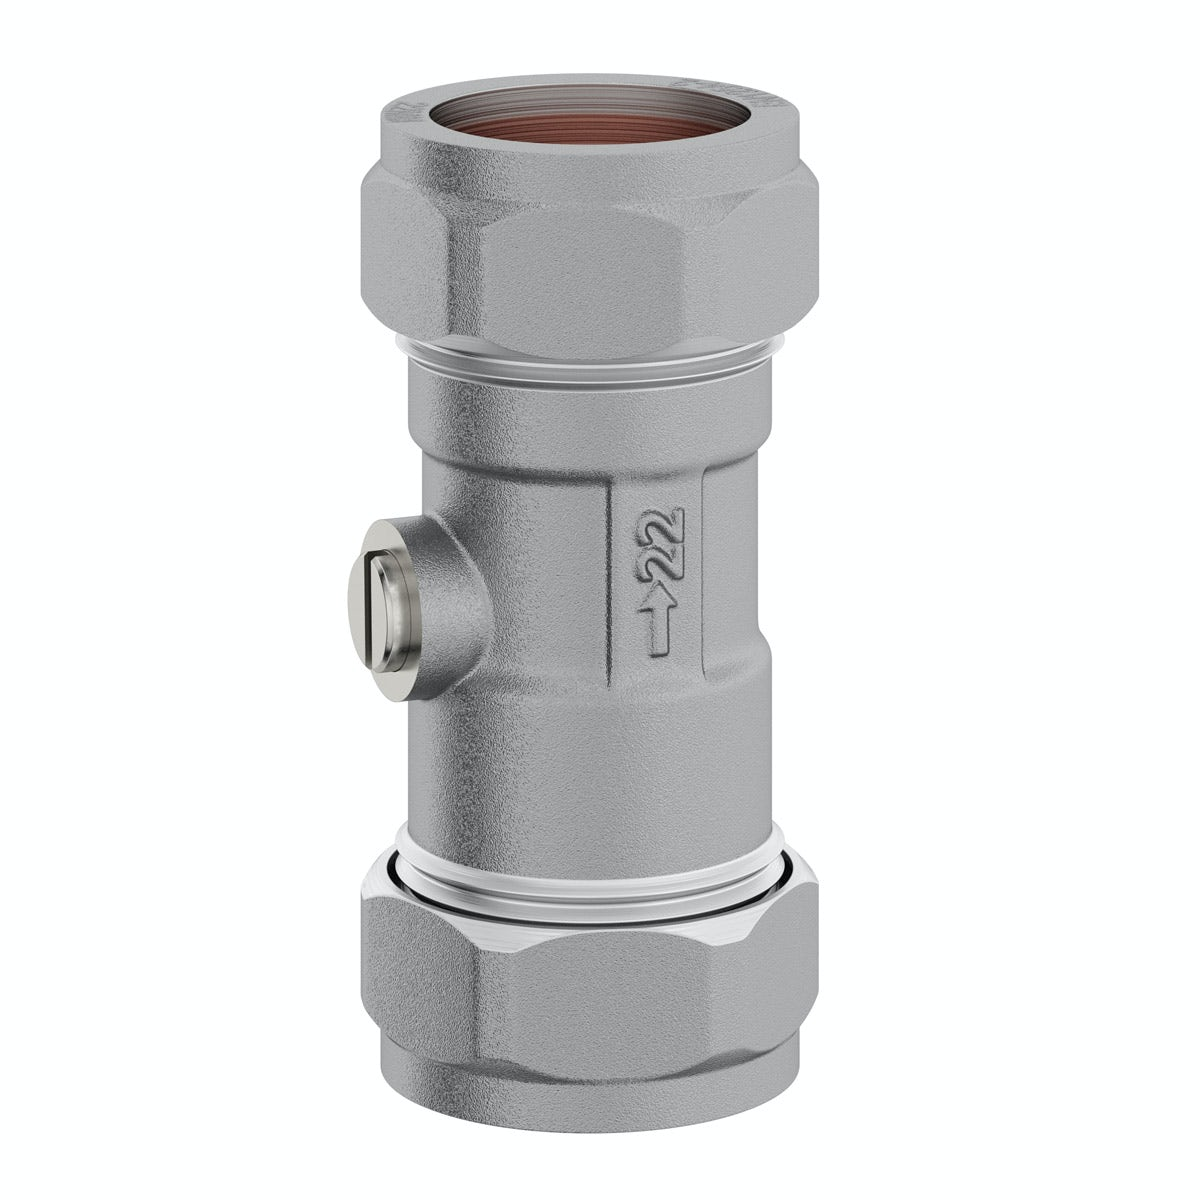 Straight isolation valve 22mm x 22mm